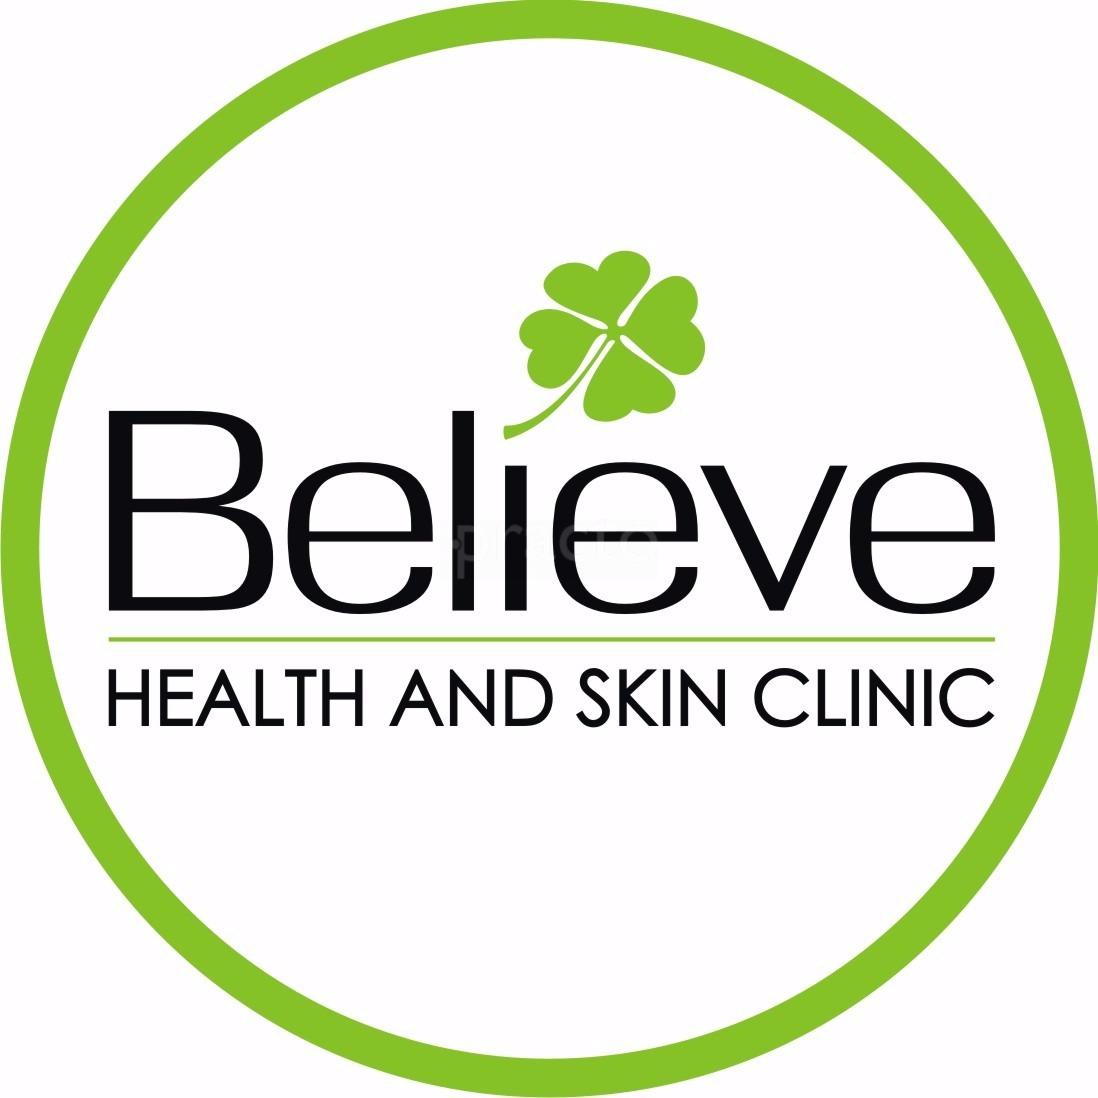 Believe - Health And Skin Clinic